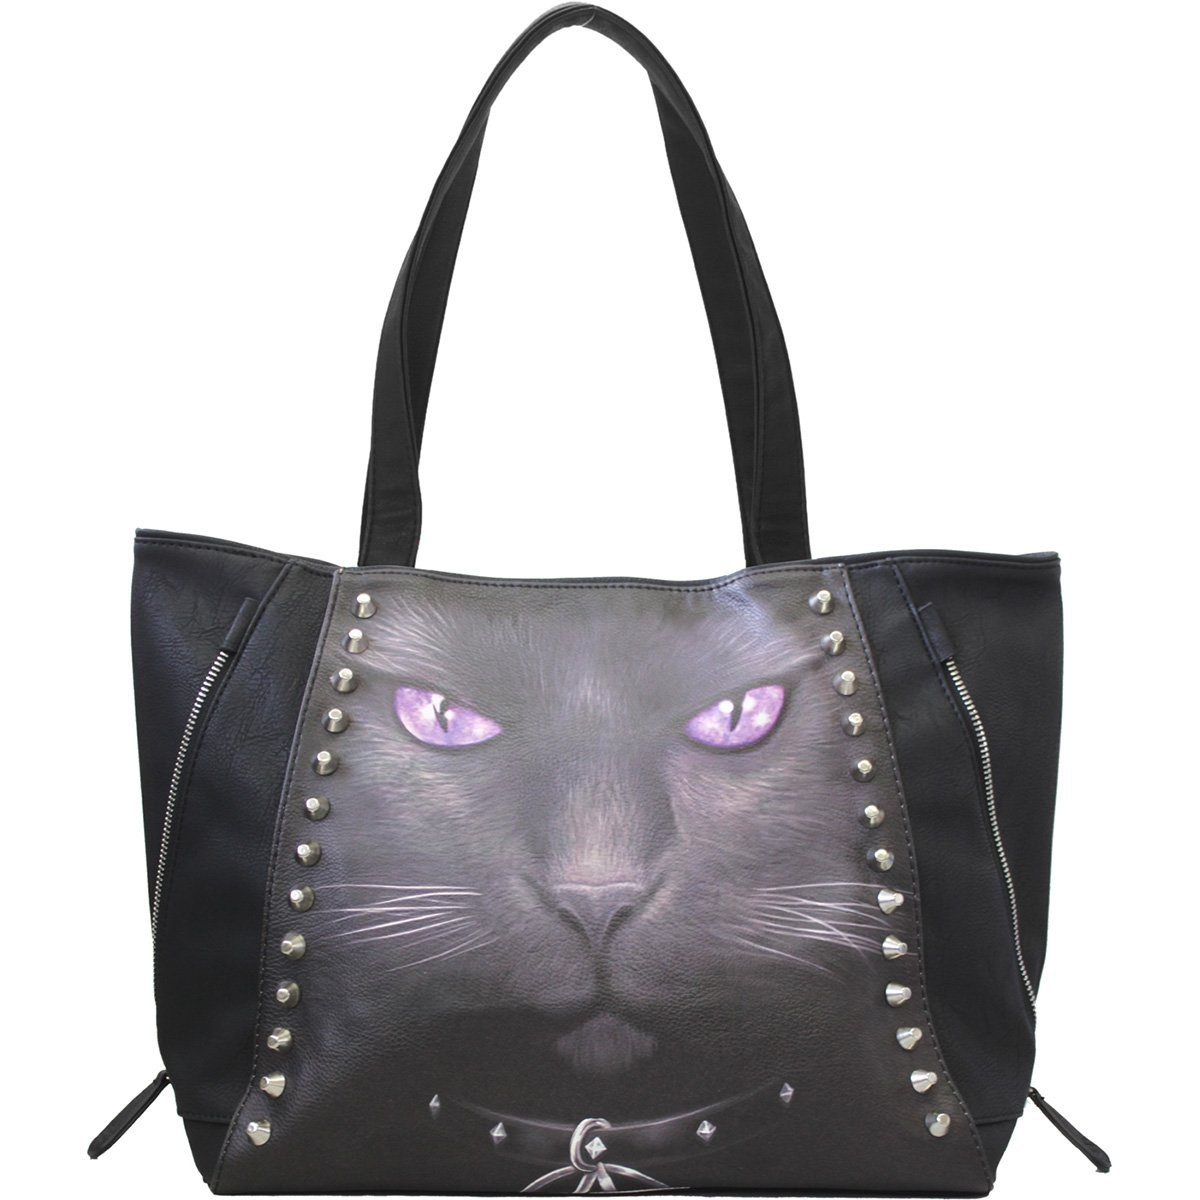 Black Cat Leather Tote Bag - Rebels Depot